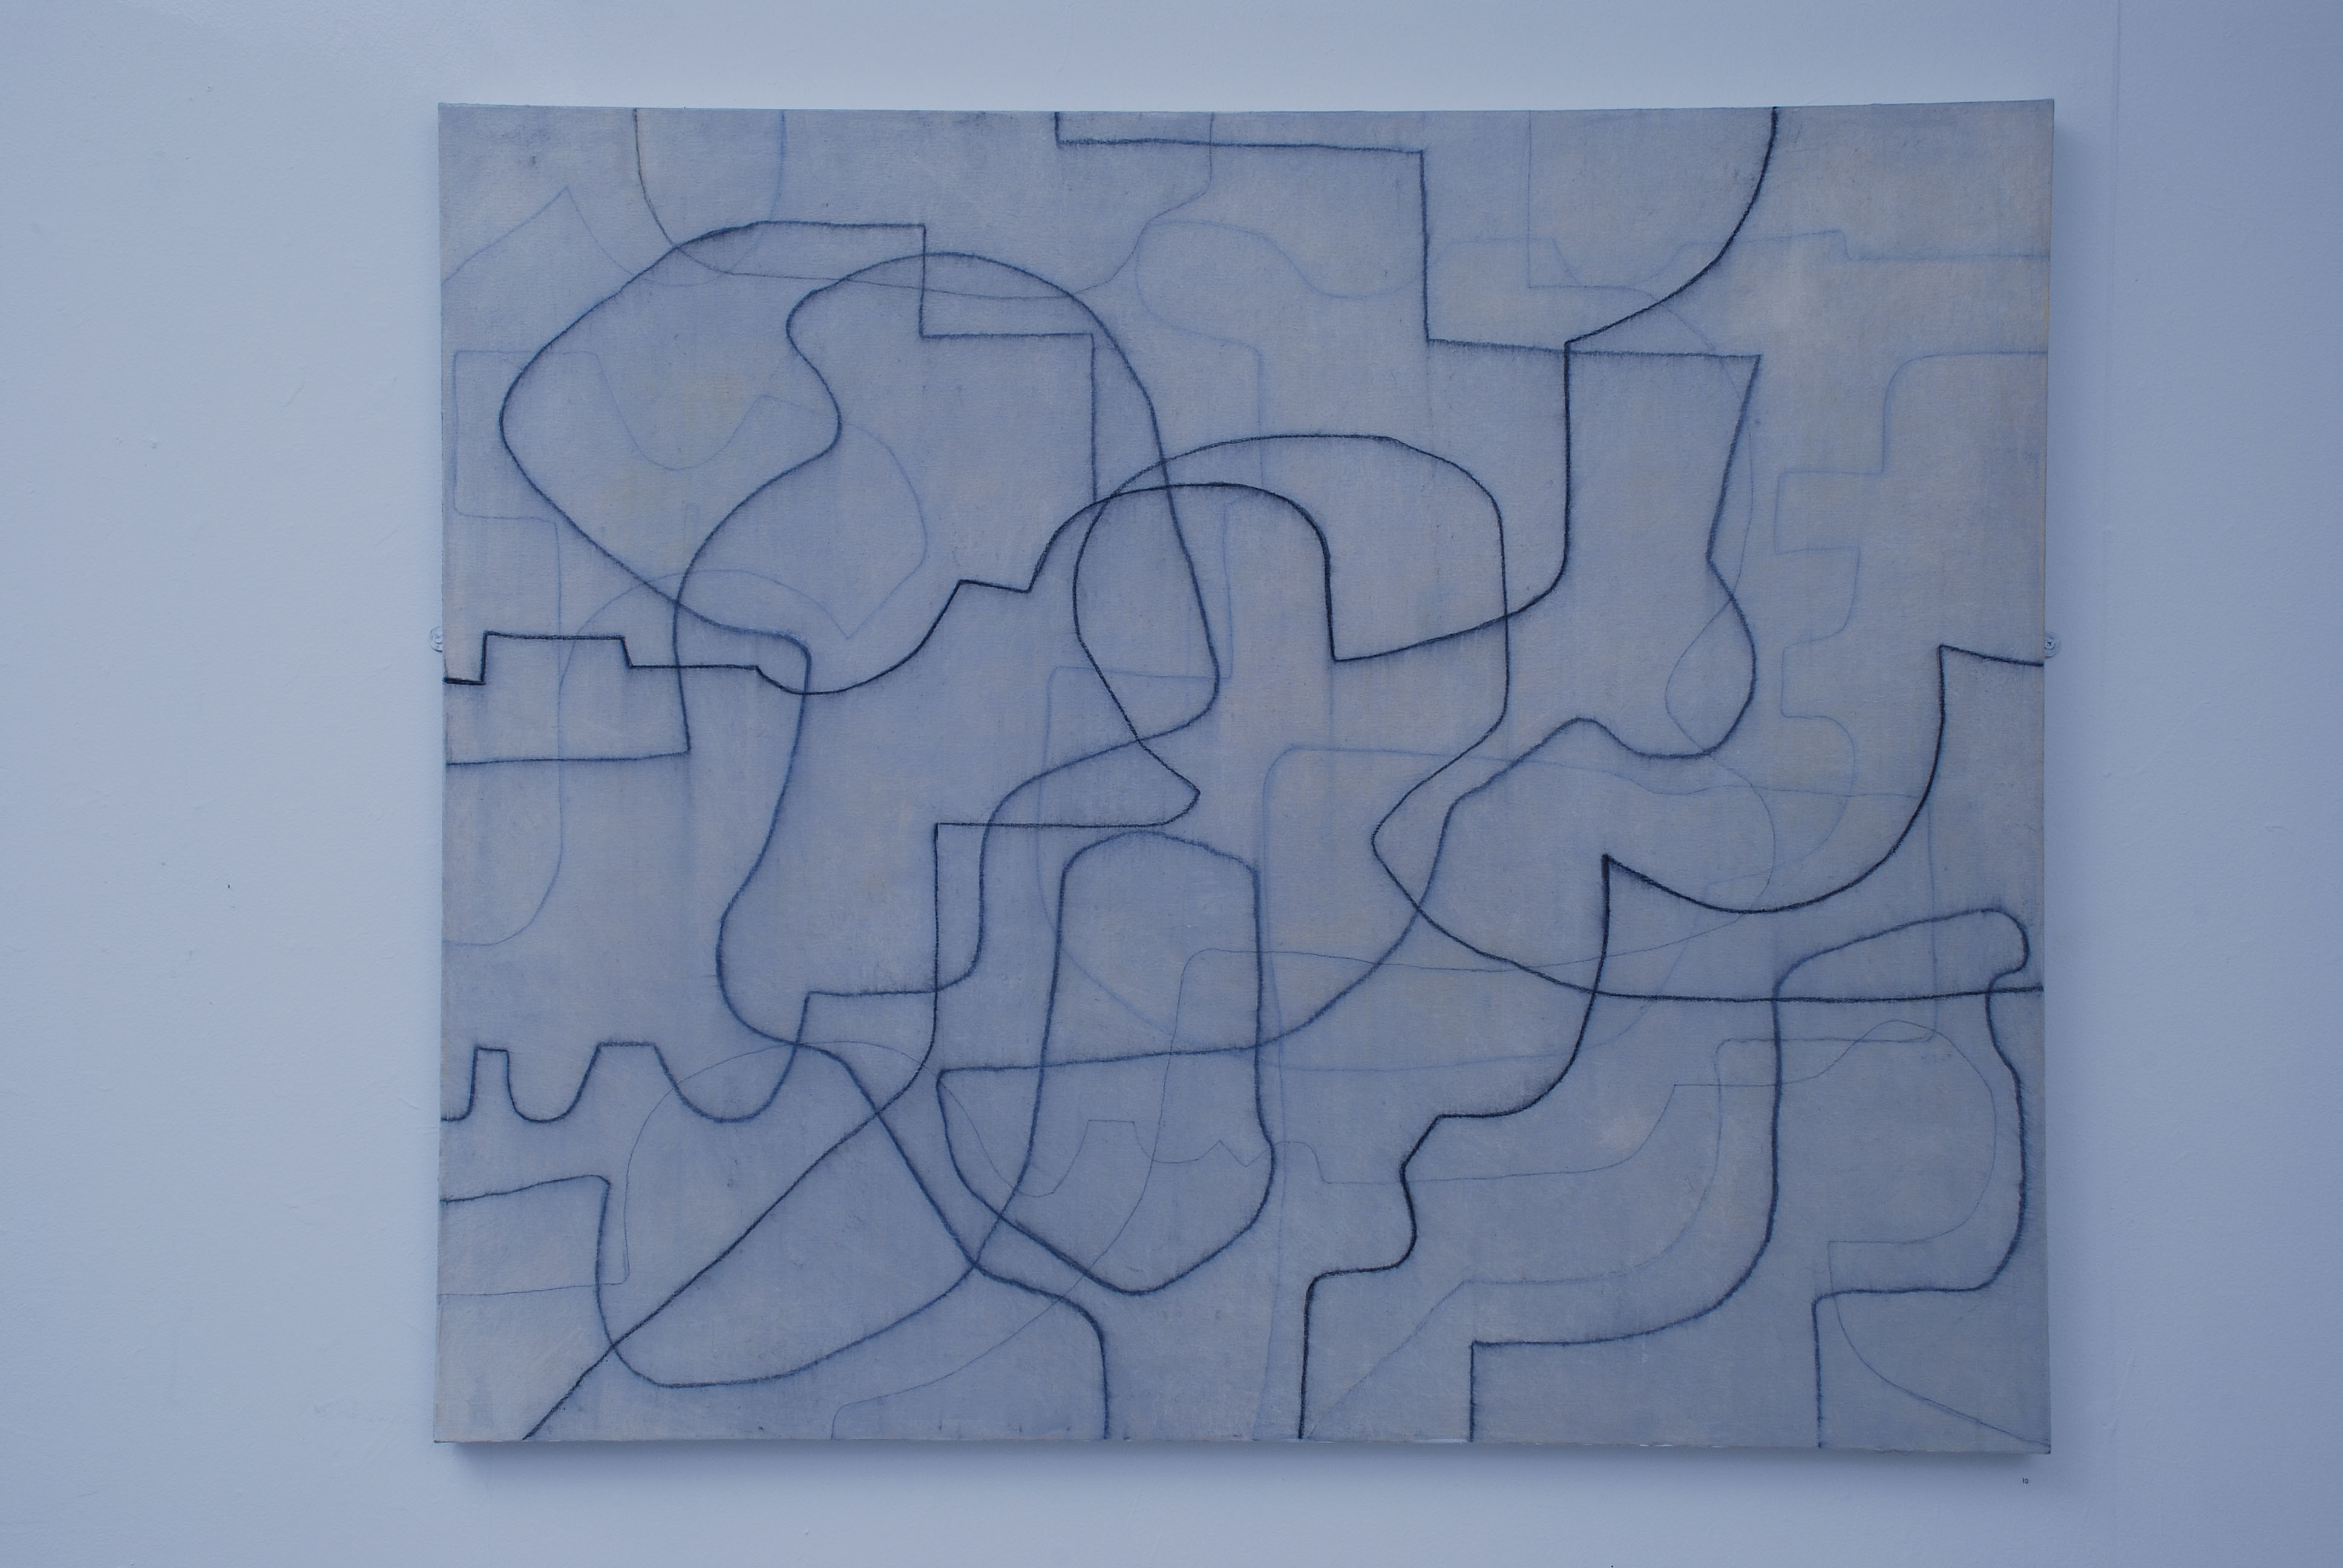 Yellow Meandering. Oil and charcoal on canvas. 100 x 120 cms. 2007.